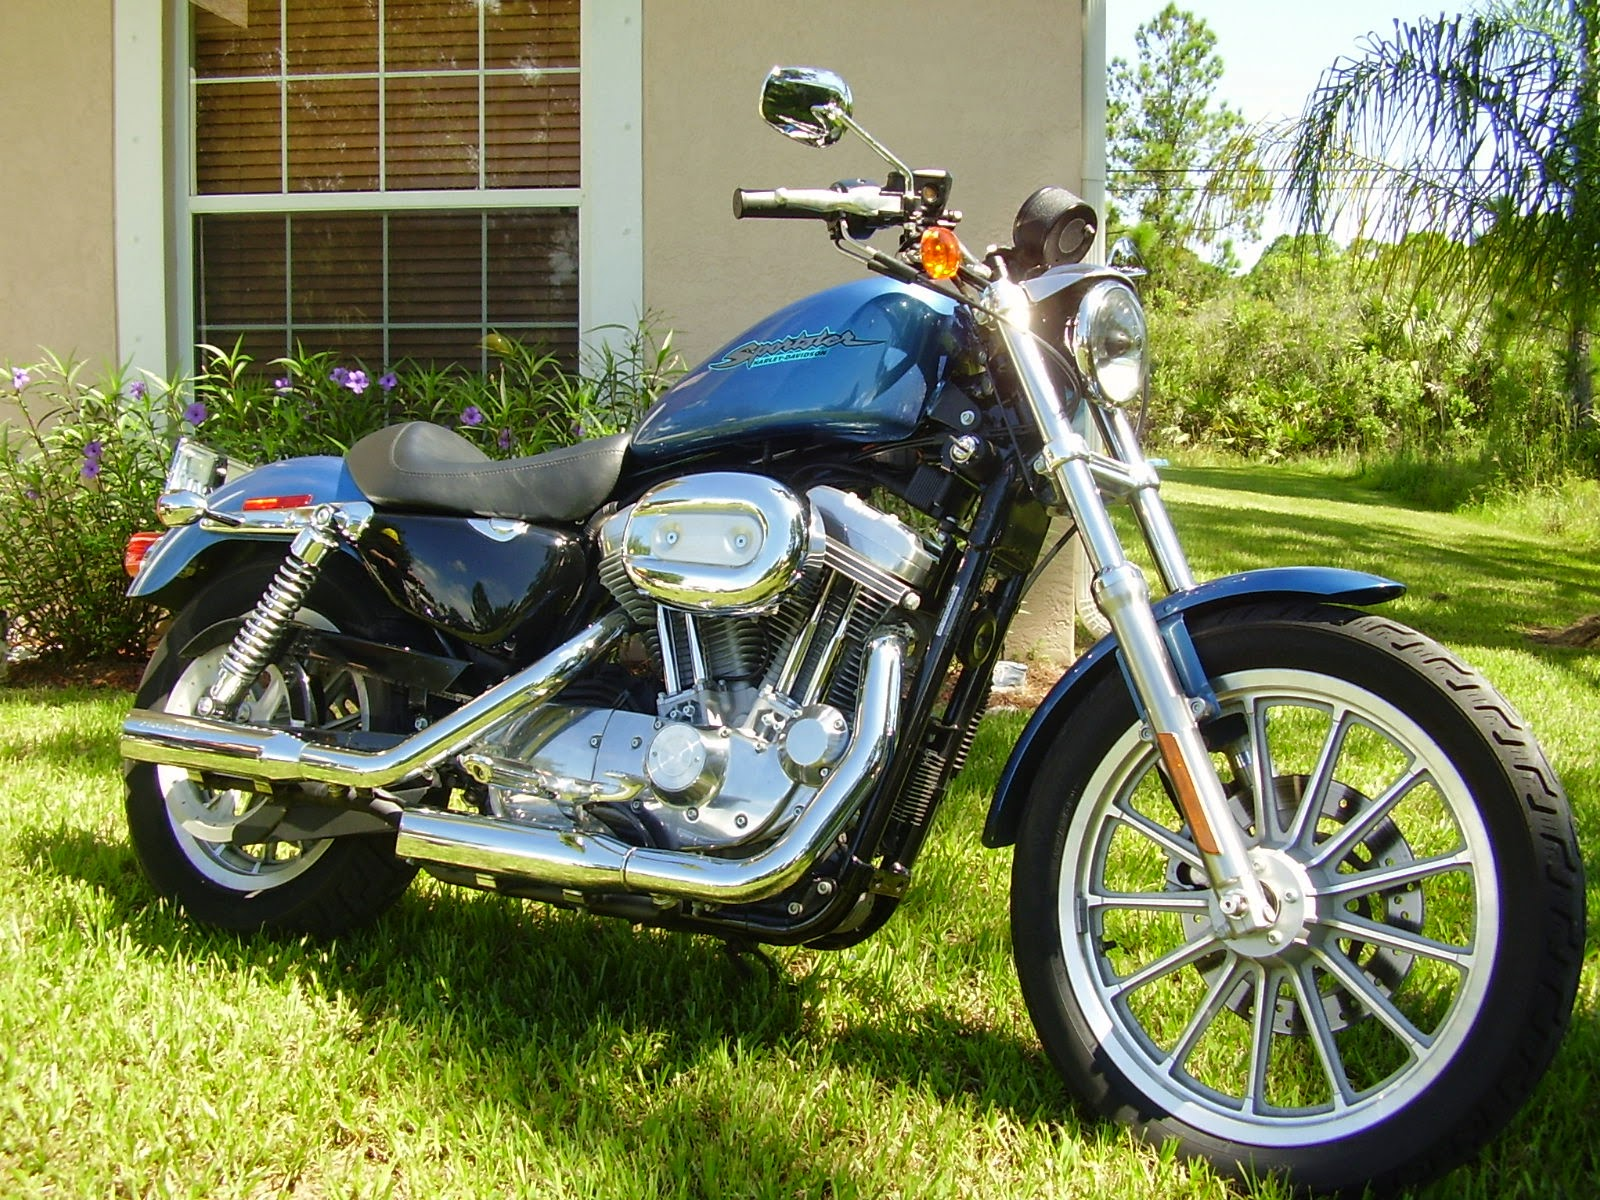 Harley Davidson Sportster Models Owner S Manual 2005 border=